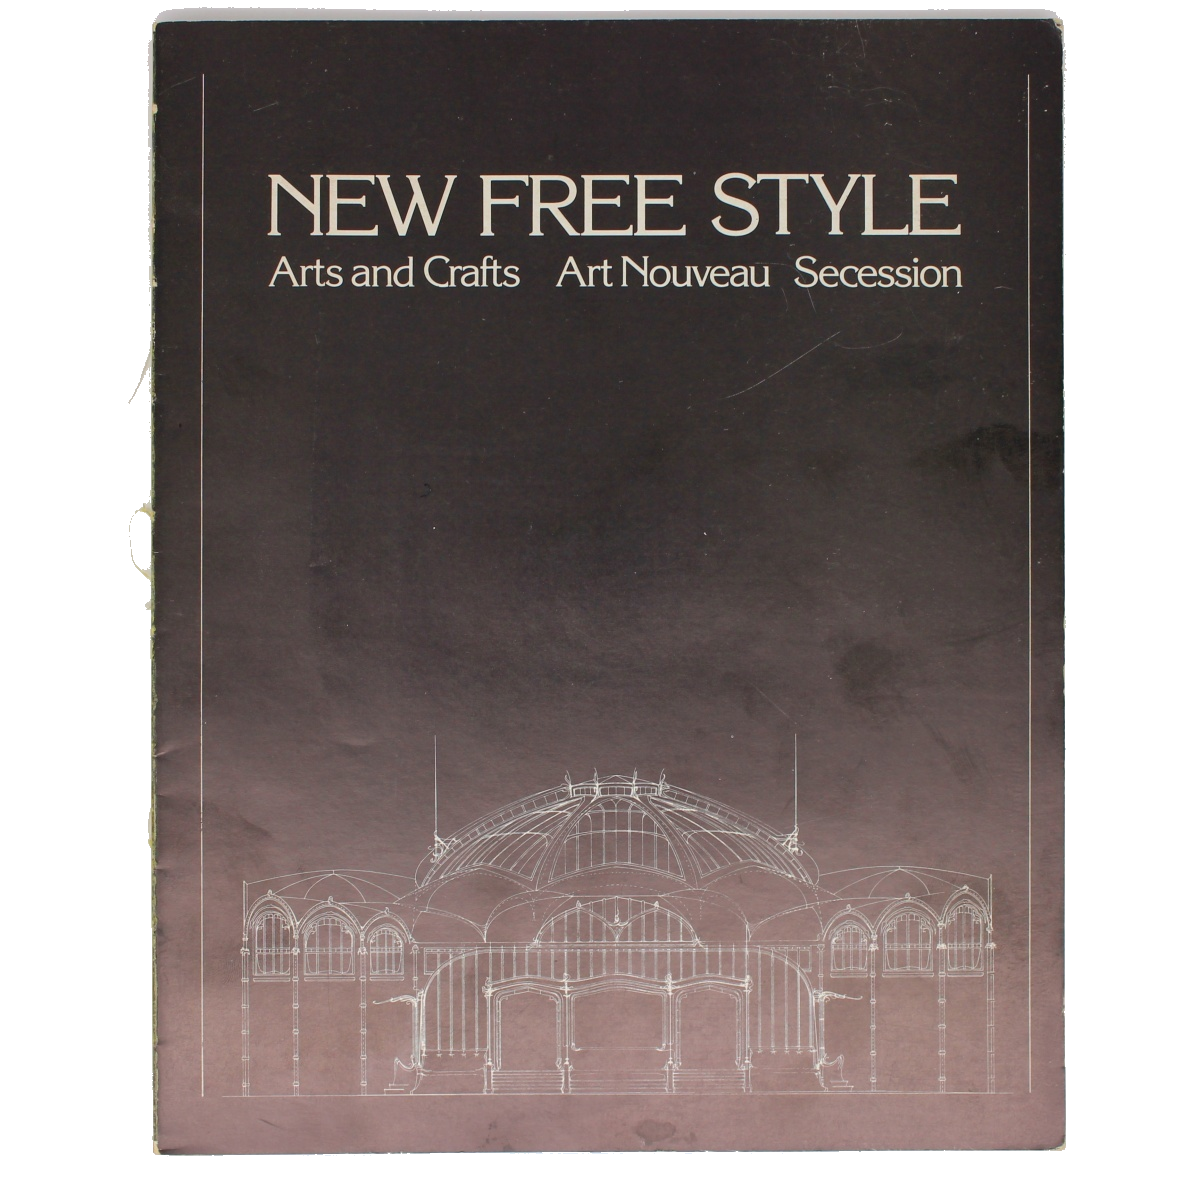 New Free Style Arts and Crafts Art Nouveau Secession - Coffee Table Book (VINTAGE)